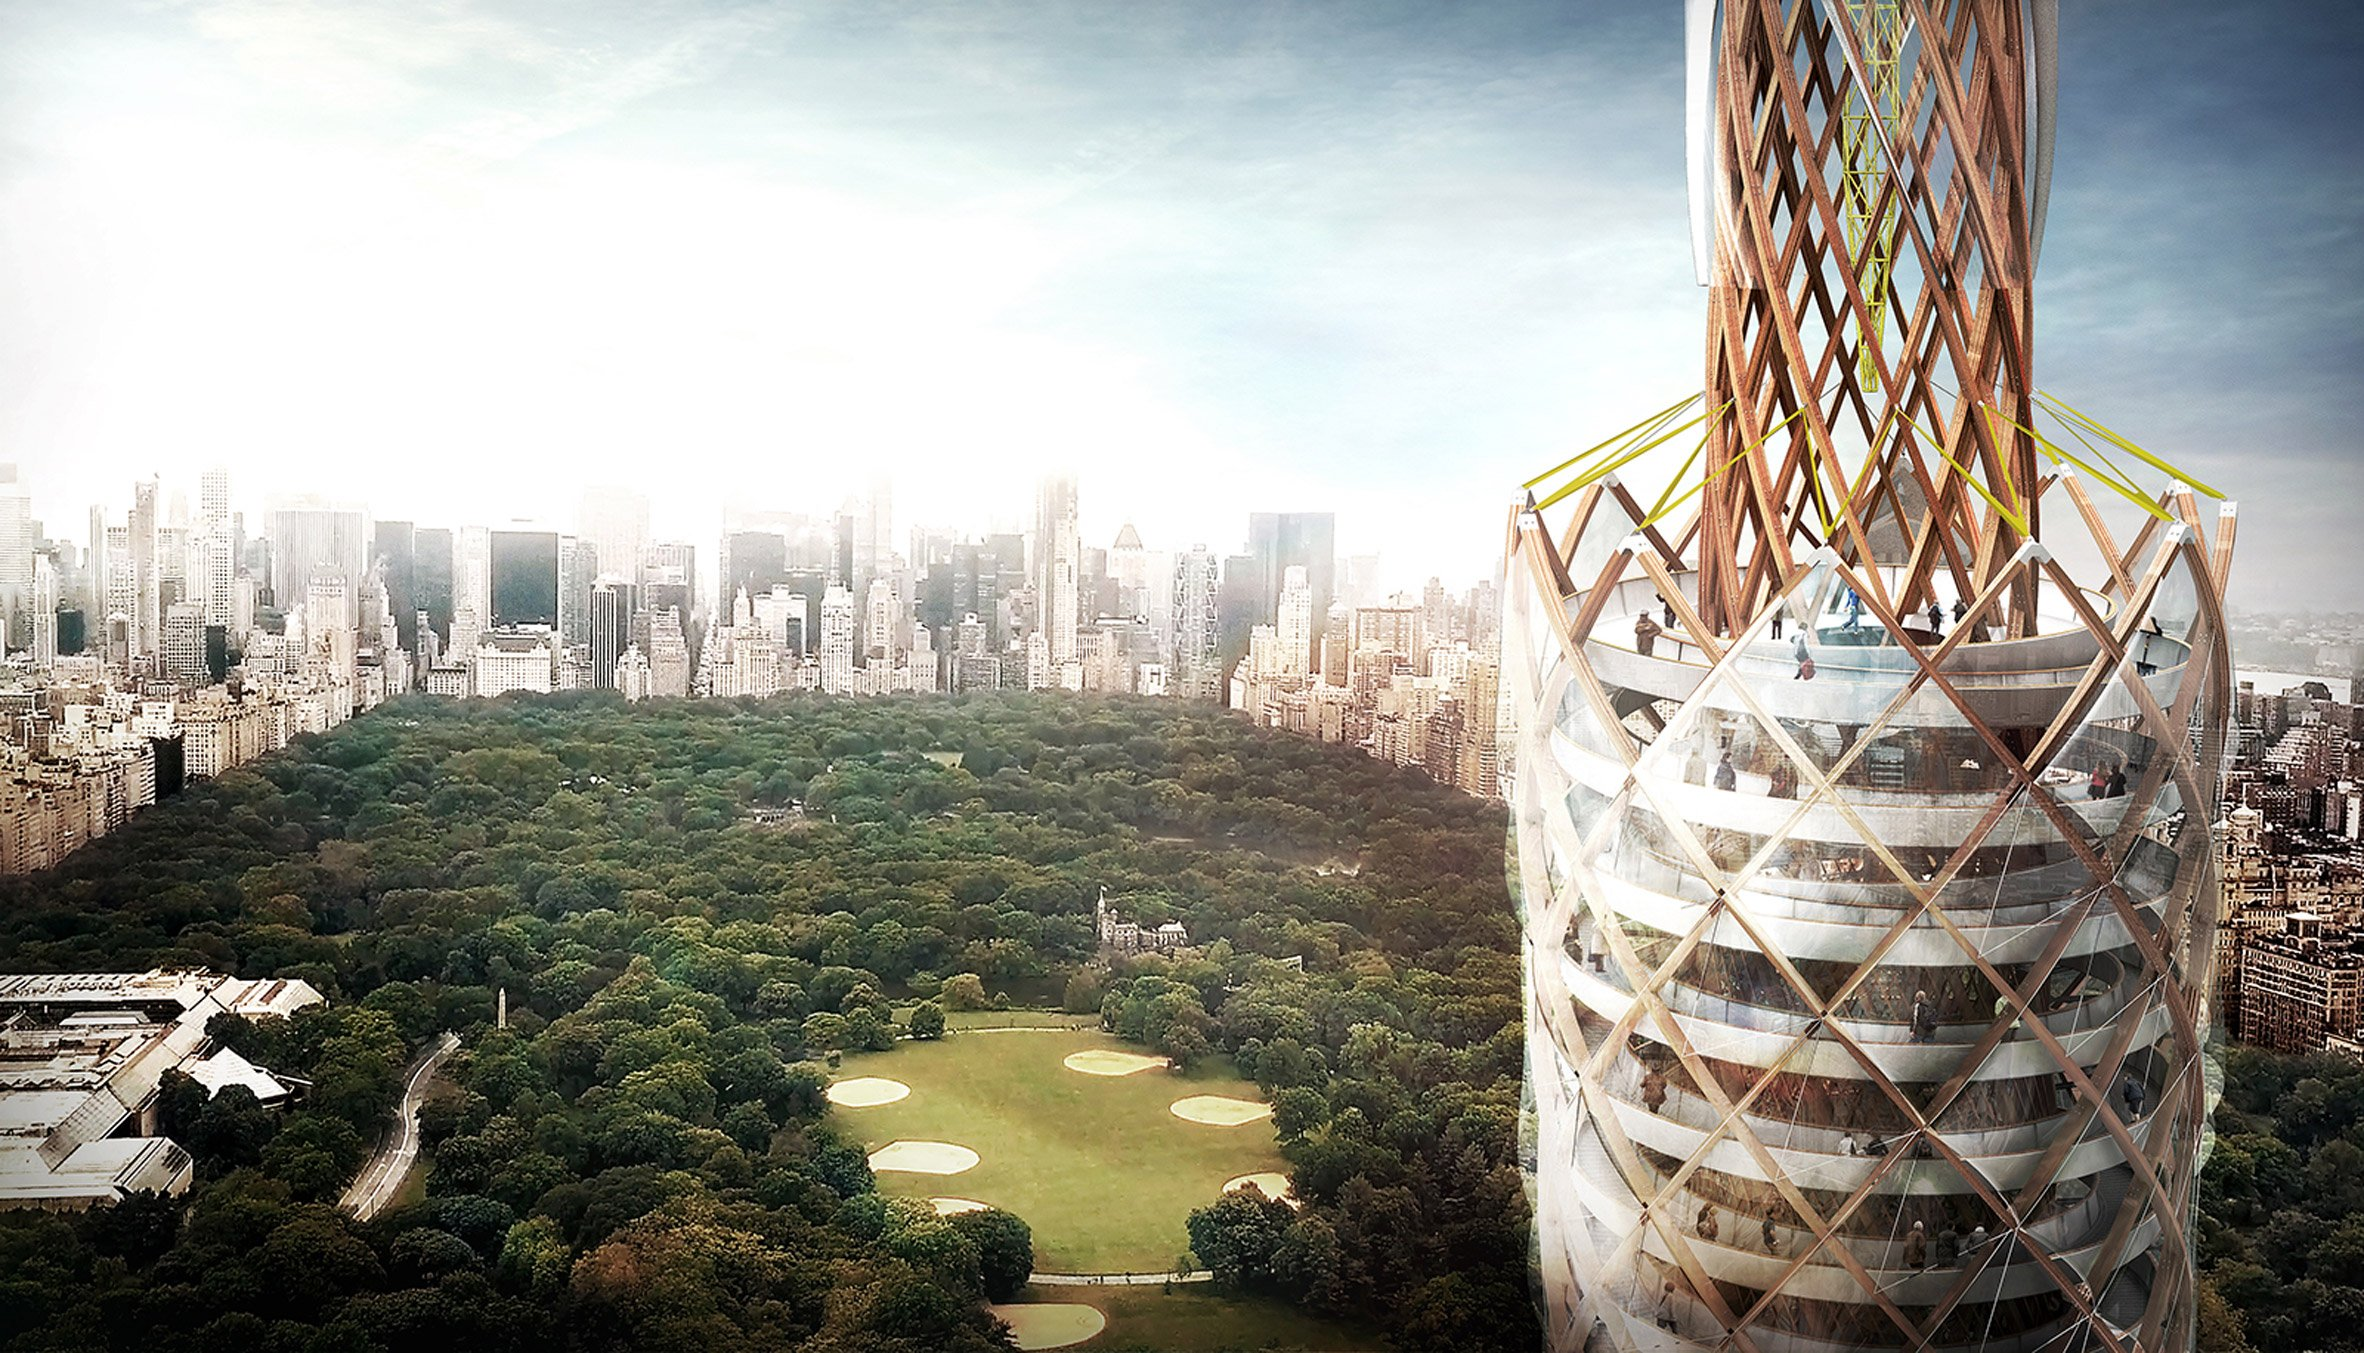 DFA proposes tallest timber observation tower to clean Central Park reservoir